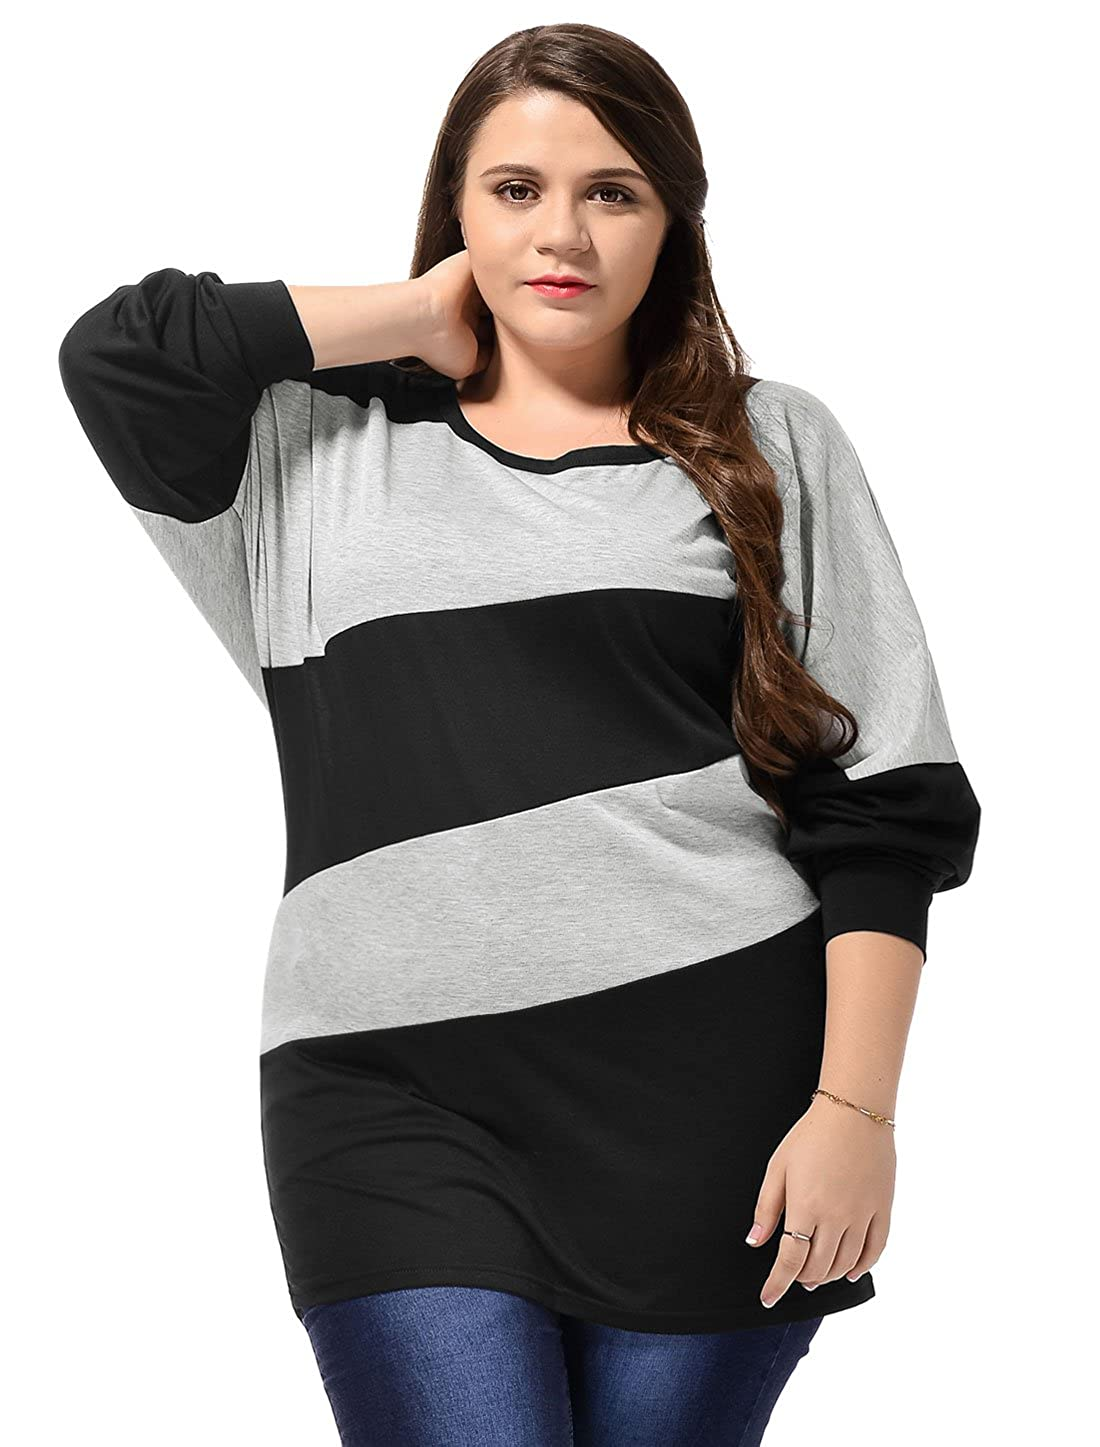 Agnes Orinda Women's Plus Size Diagonal Stripes Long Batwing Sleeves Tunic Top 2X Black Allegra K a15092800ux0393